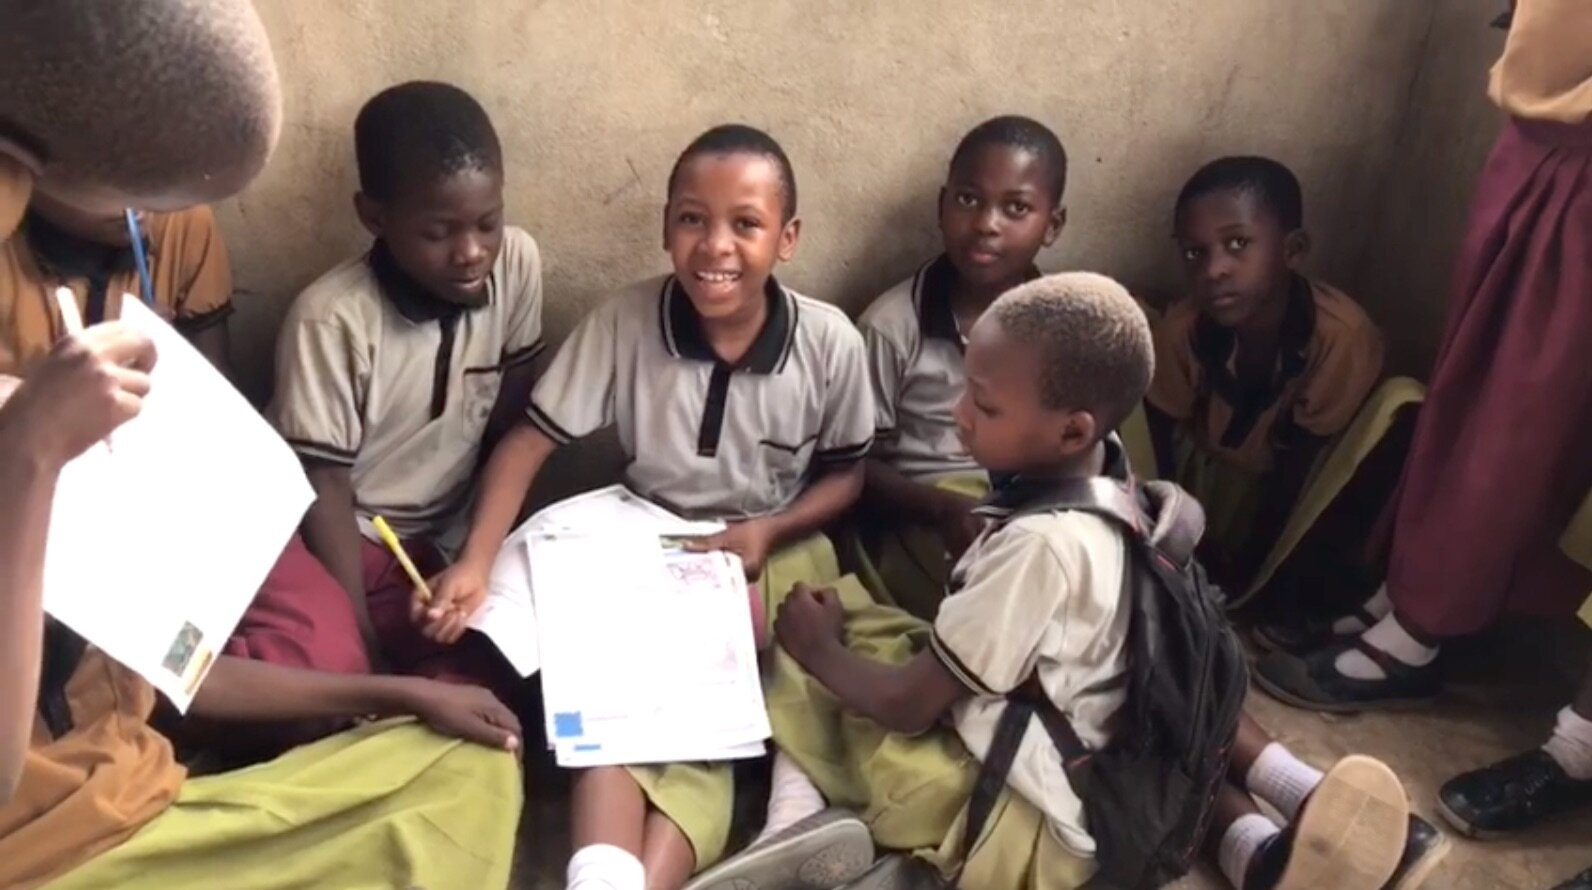 Pictured: Sabrina is smiling in the center, Agnes (to her left) is one of the children sponsored by The Robbins. The others also writing include: Salma, Shasta, Abdulazack, and Shadya.